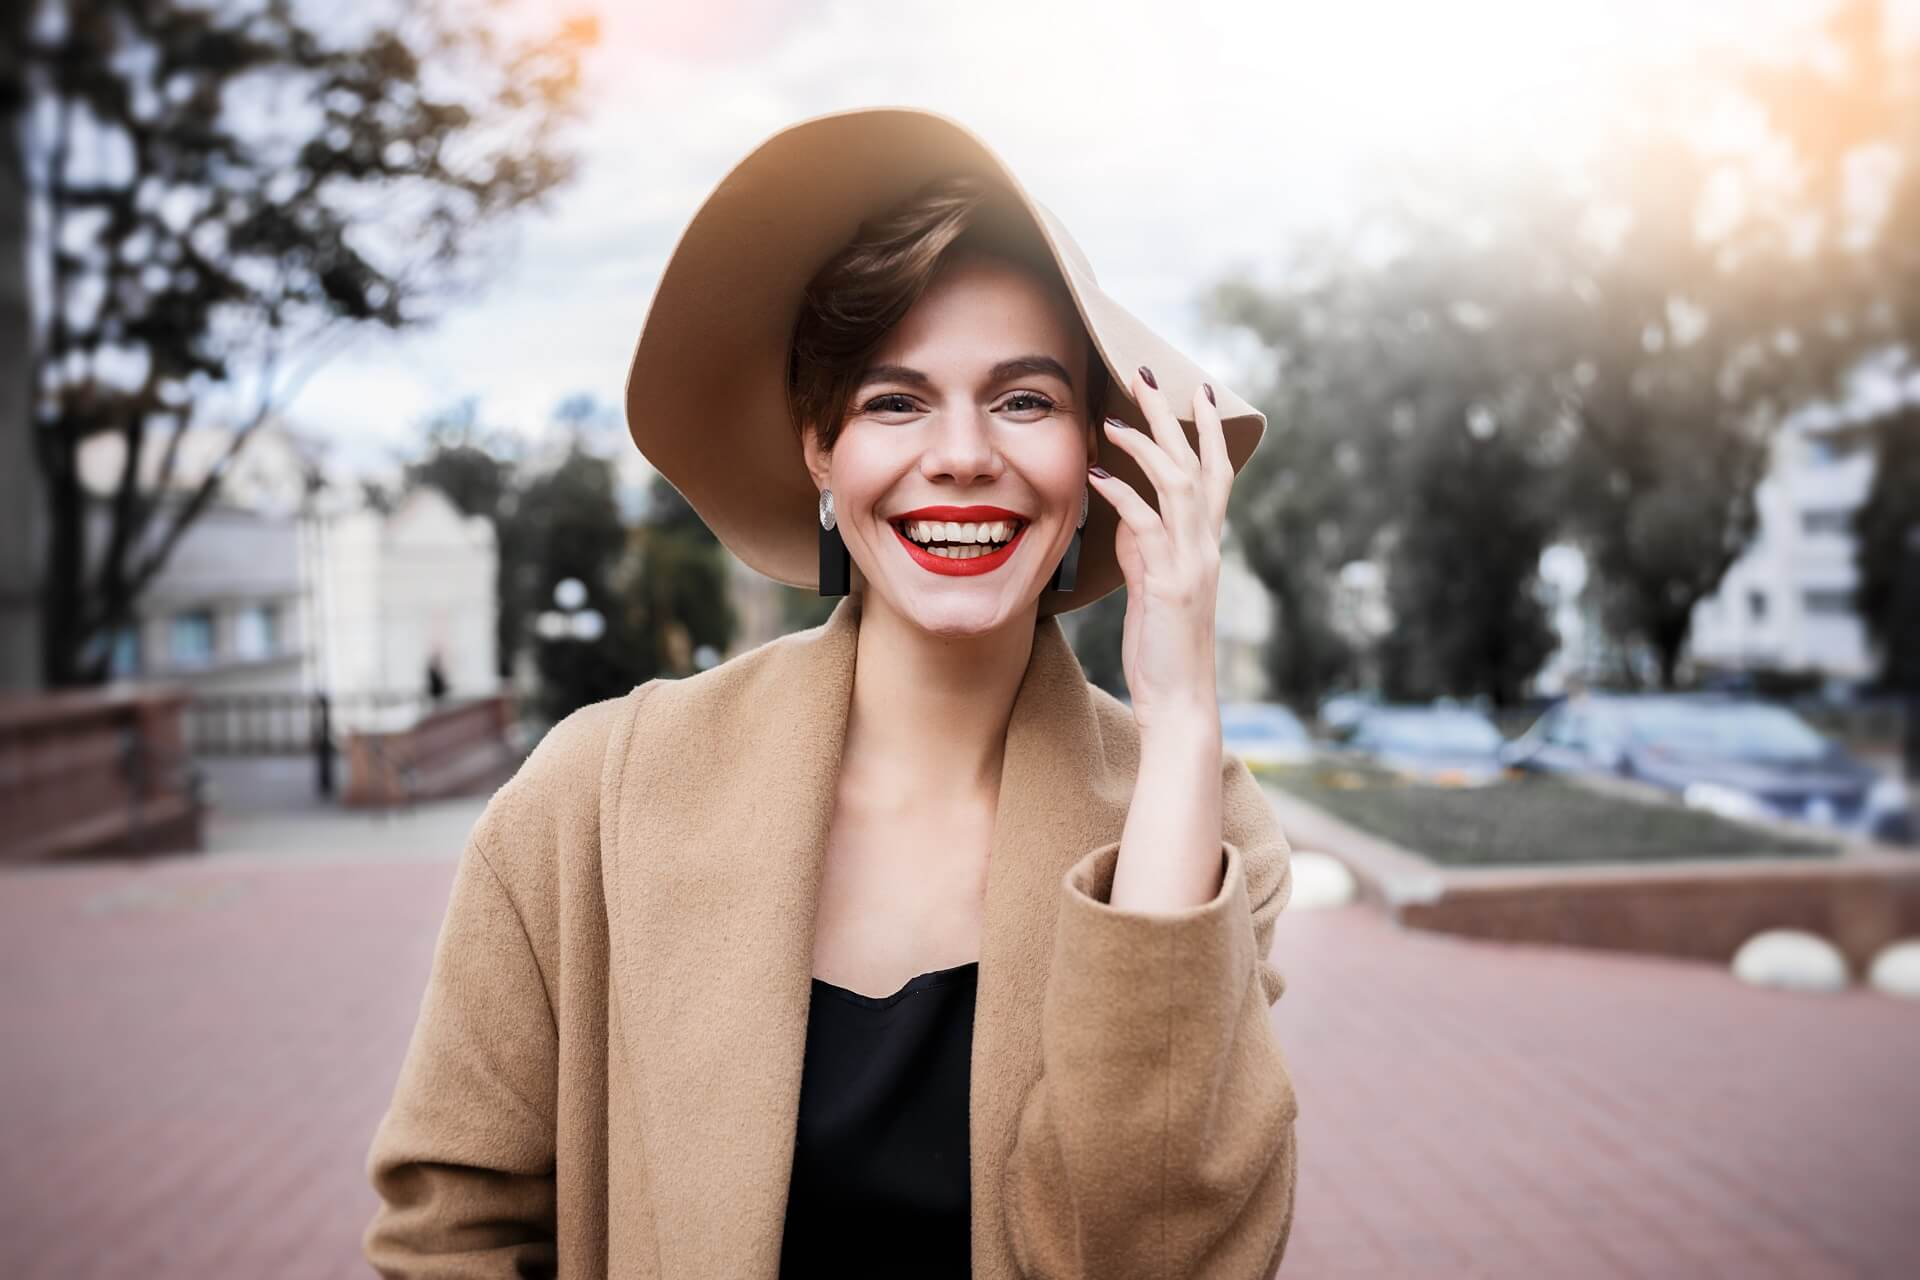 woman with heavy makeup smiling at camera outdoors